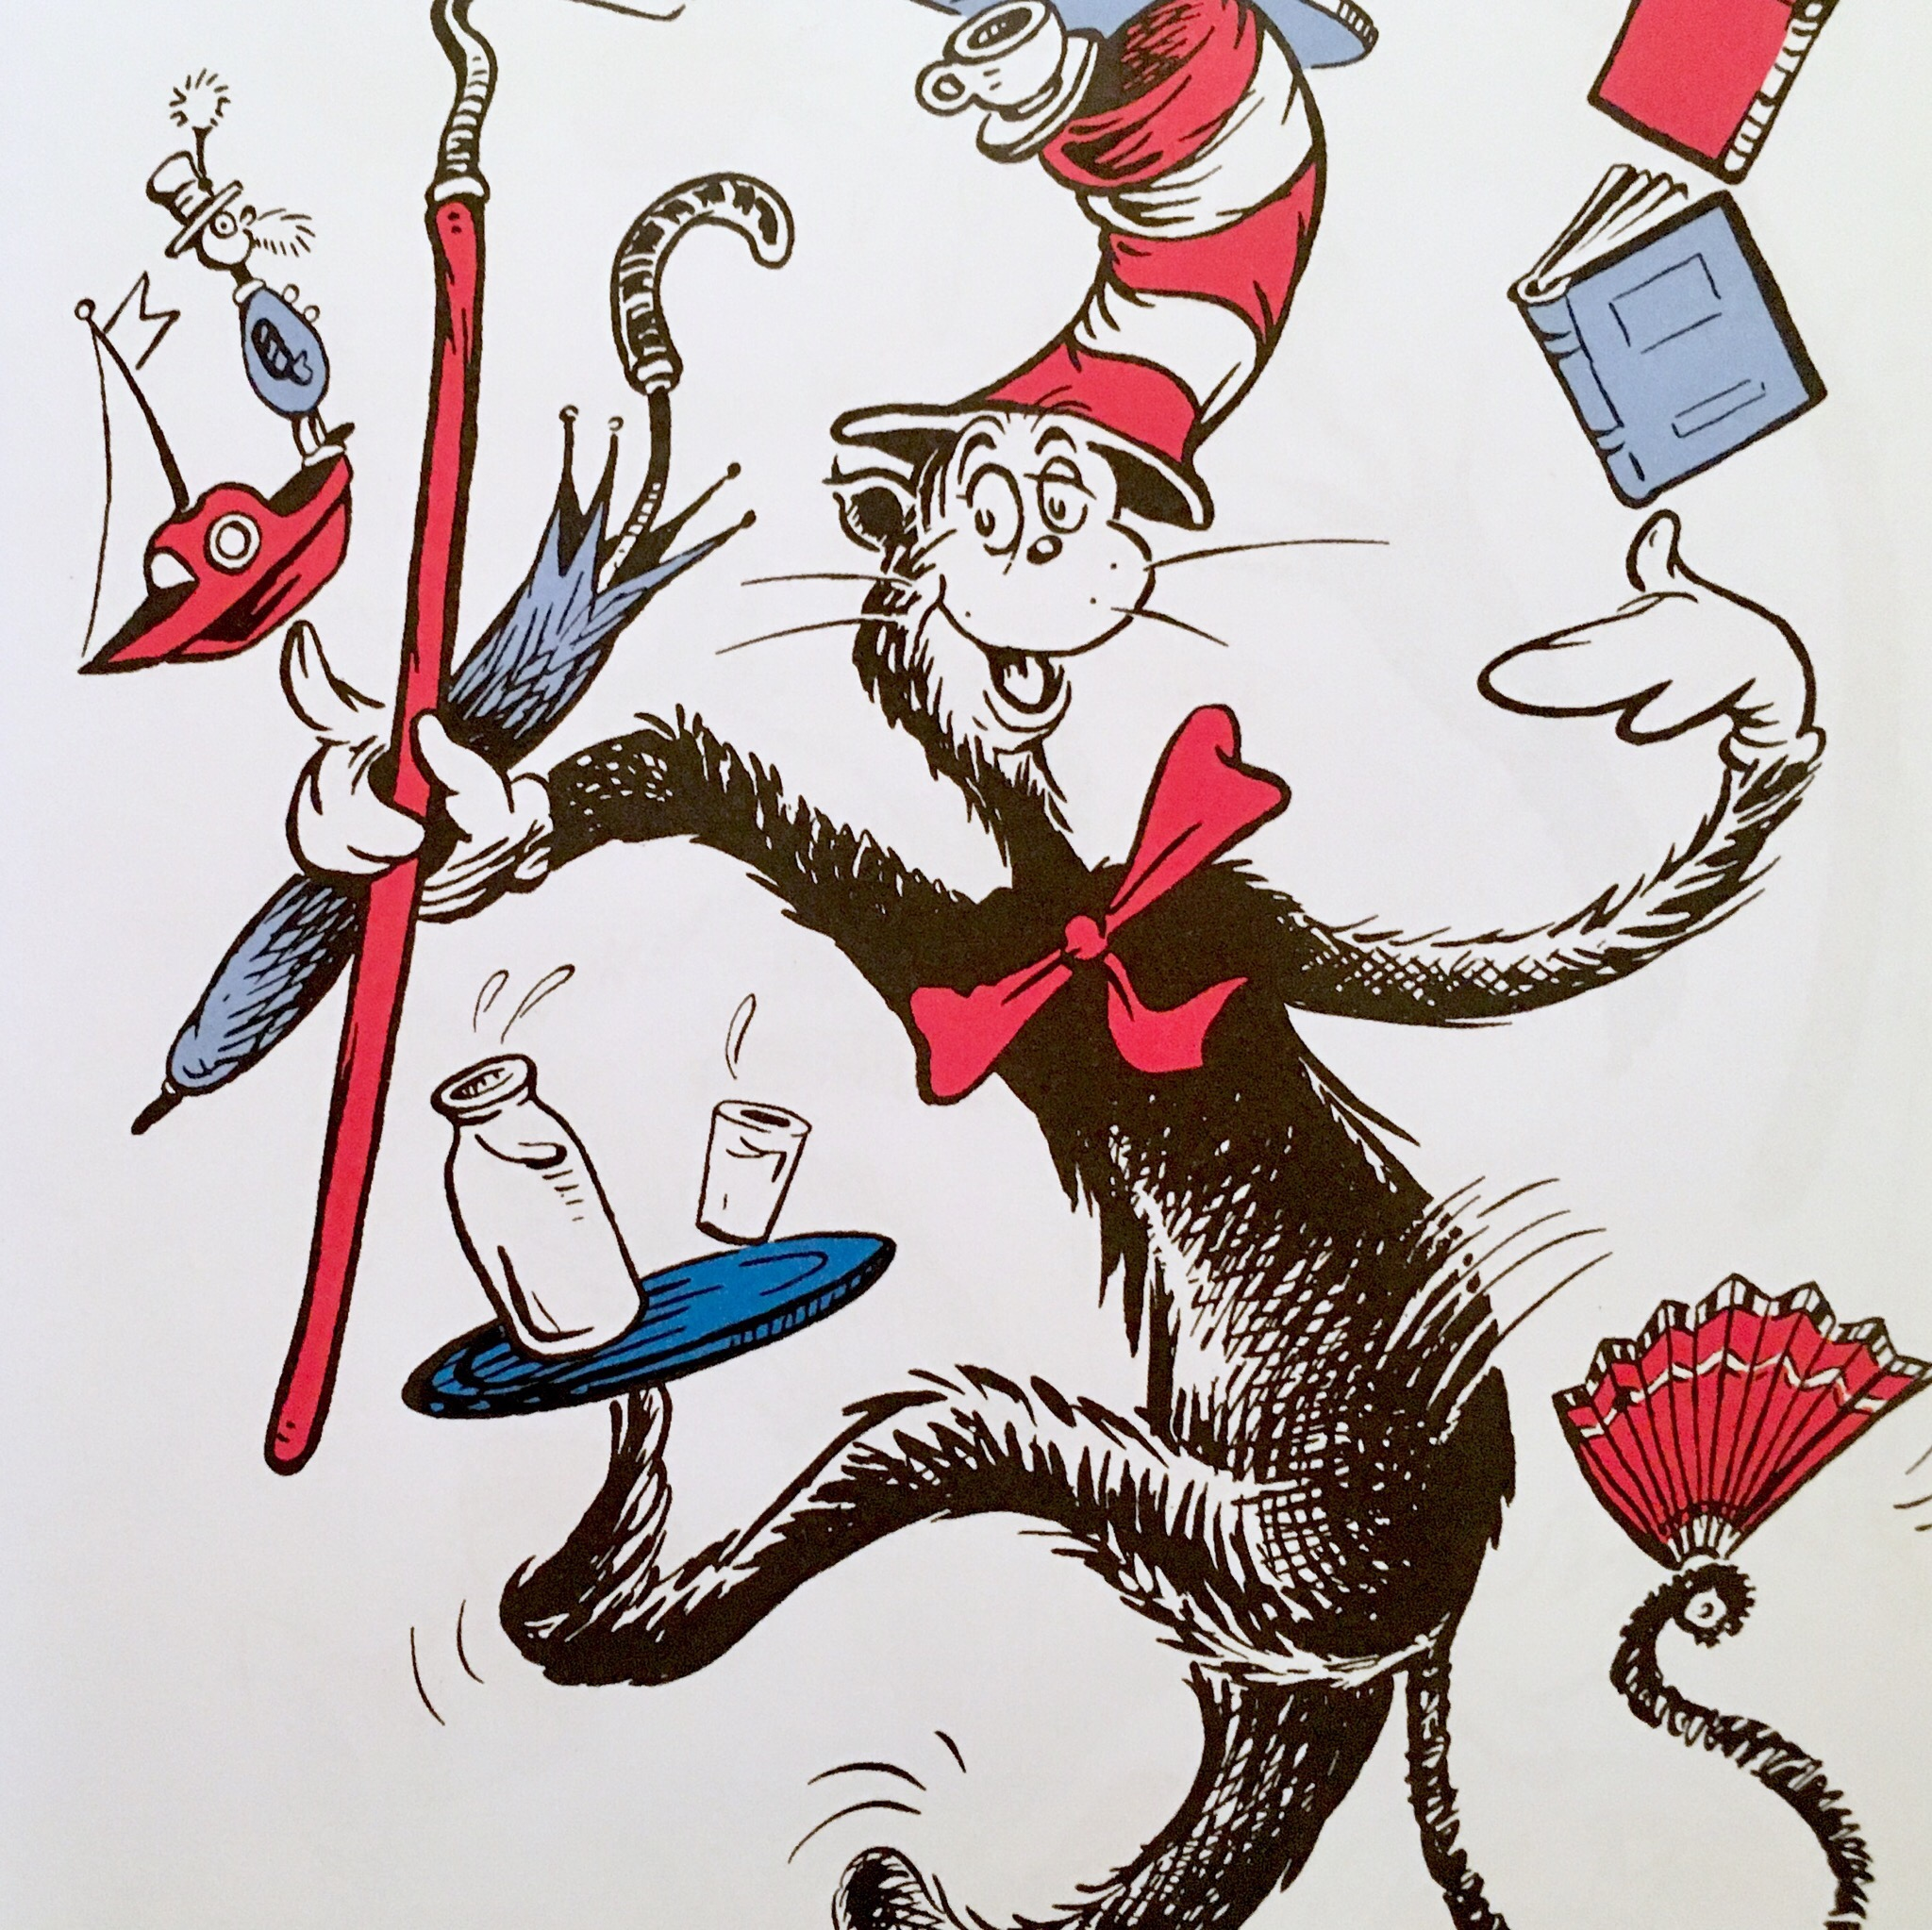 An illustration from The Cat in the Hat; the cat is holding a red fan in its tail which has a white zig-zag pattern on it